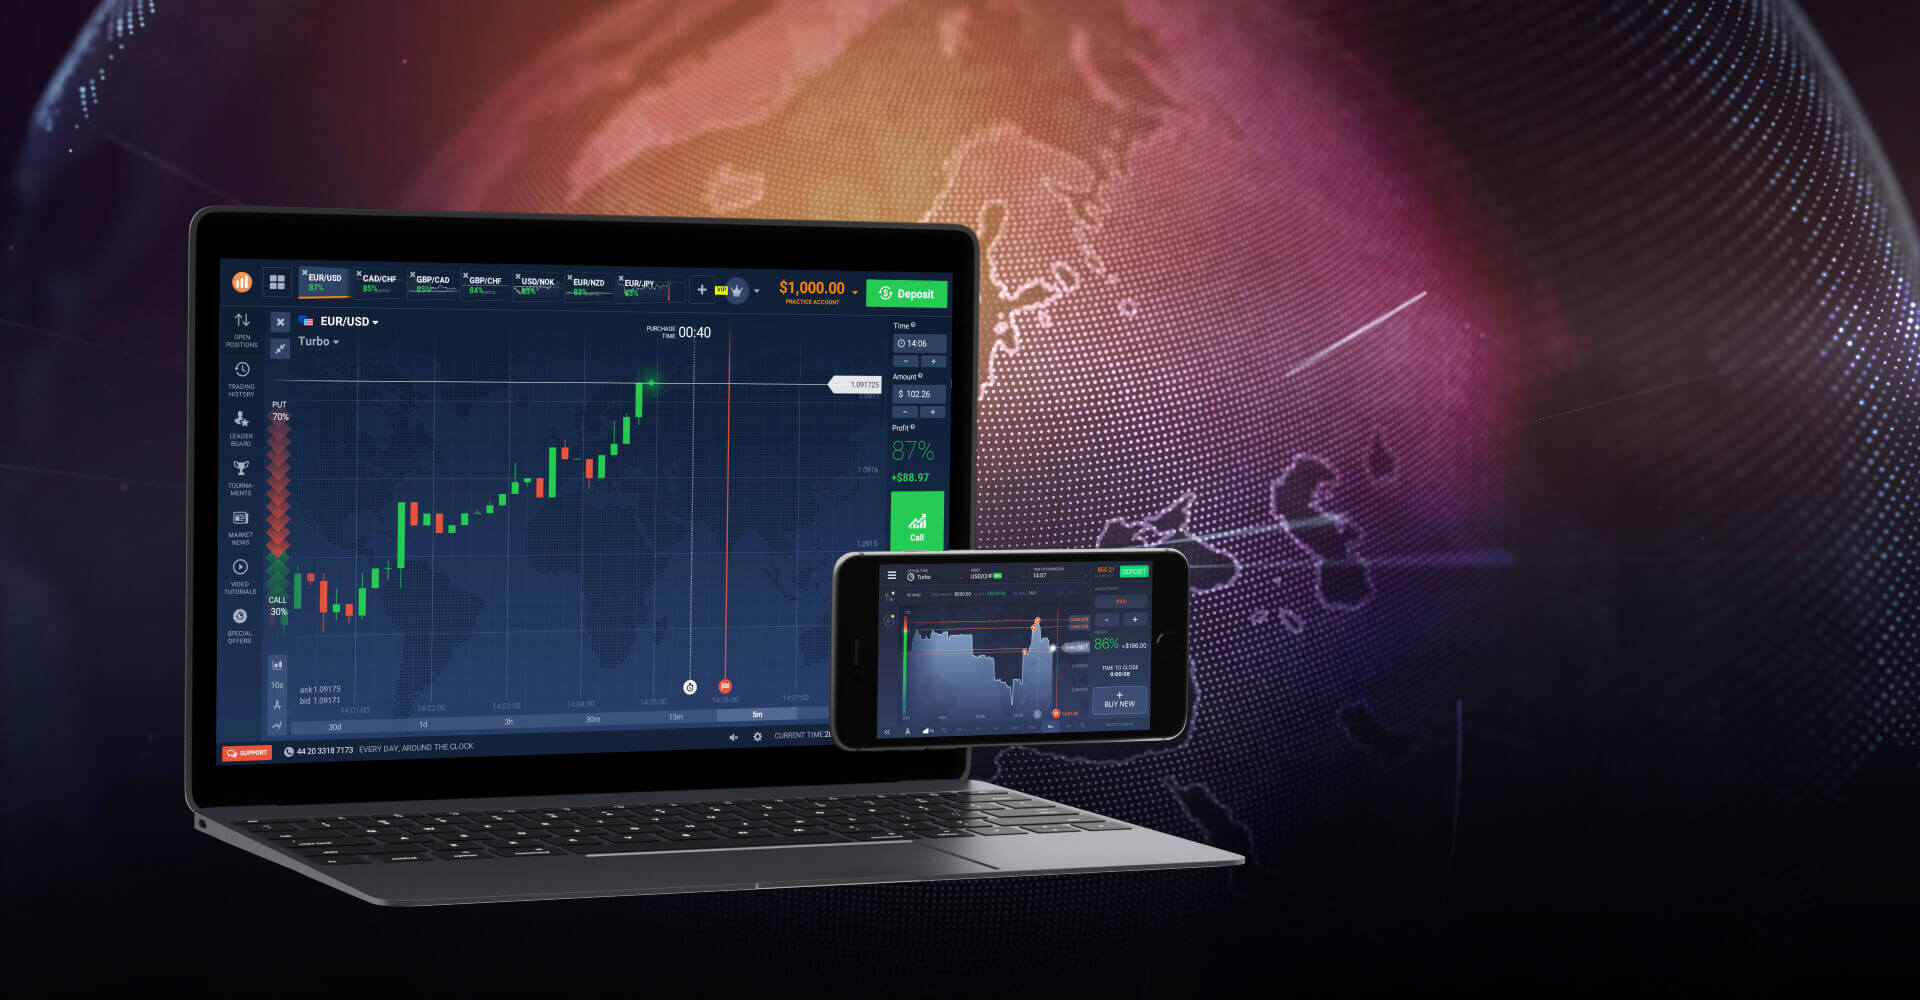 iq options modern binary trading platform for new traders in Sri Lanka - by prathilaba sinhala binary tutorials